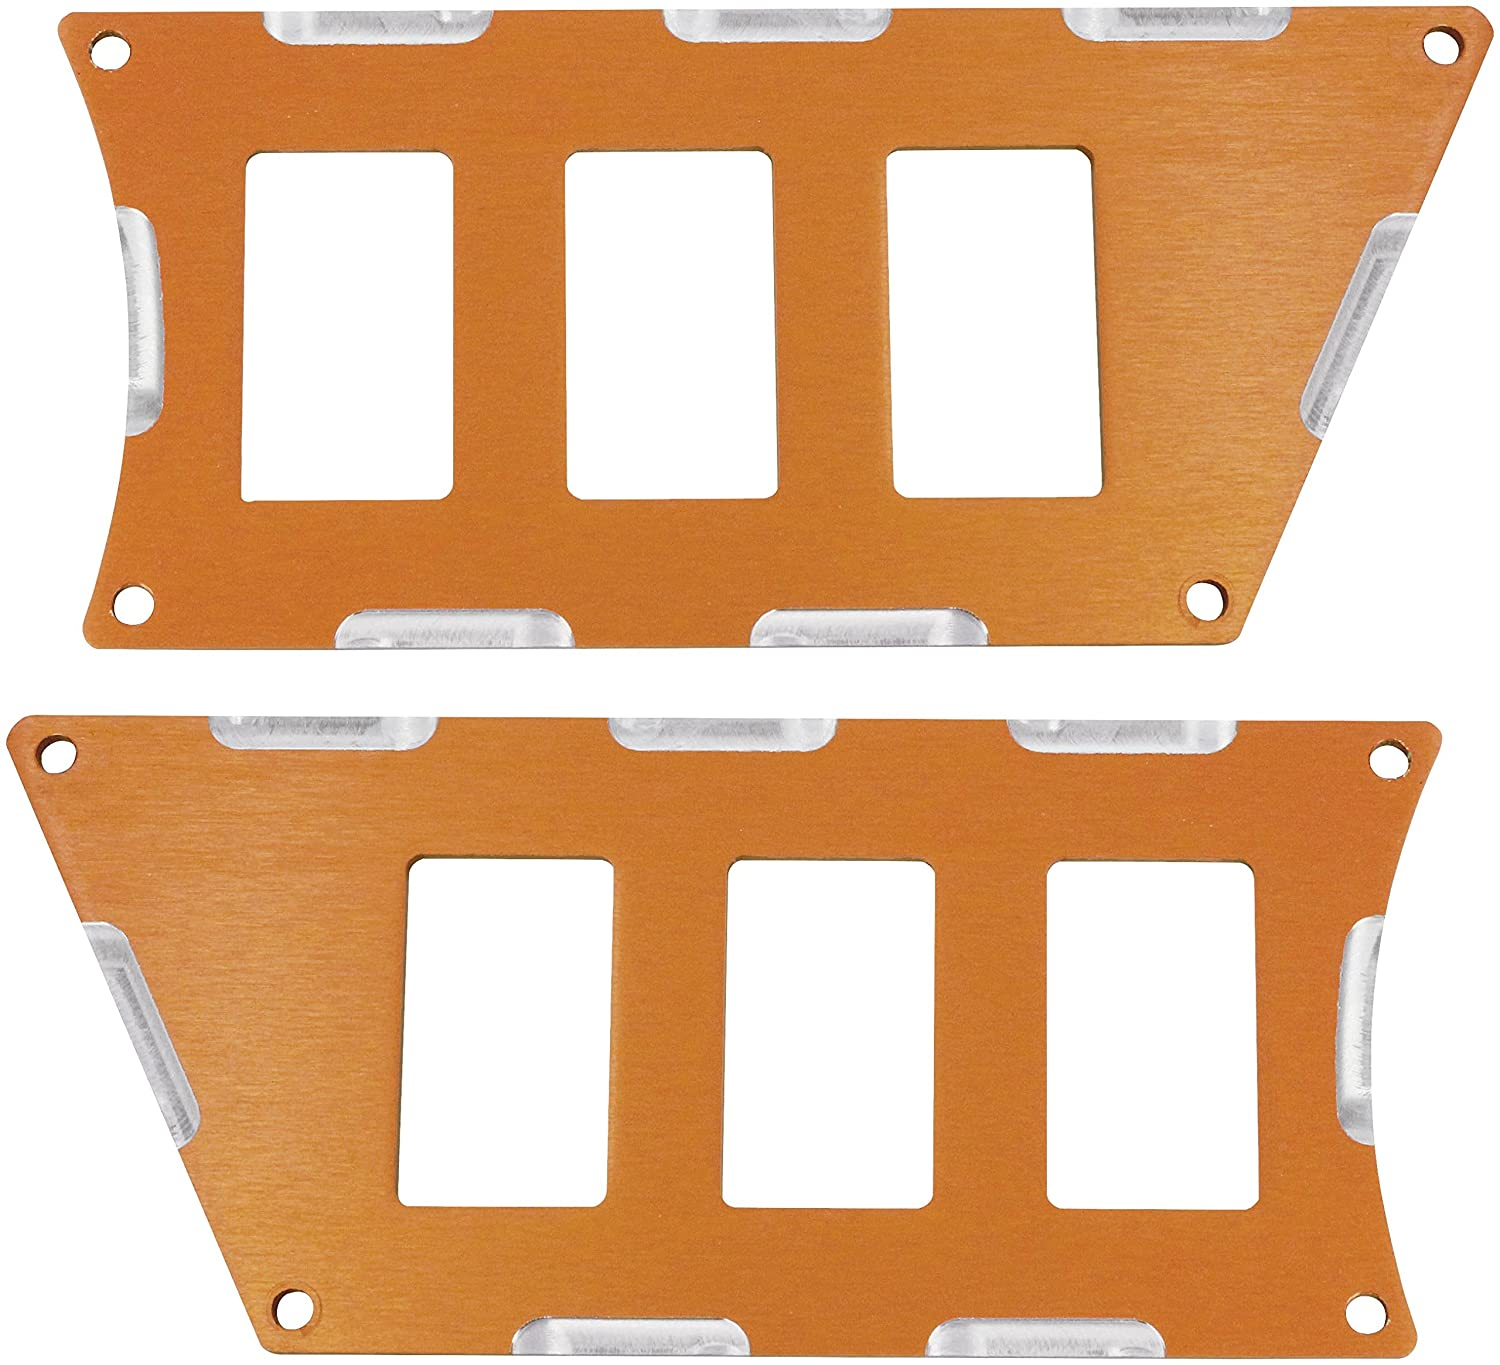 Modquad Orange Rocker Switch Panels for 6 Switches Polaris RZR XP 1000 / Turbo TRTC2617